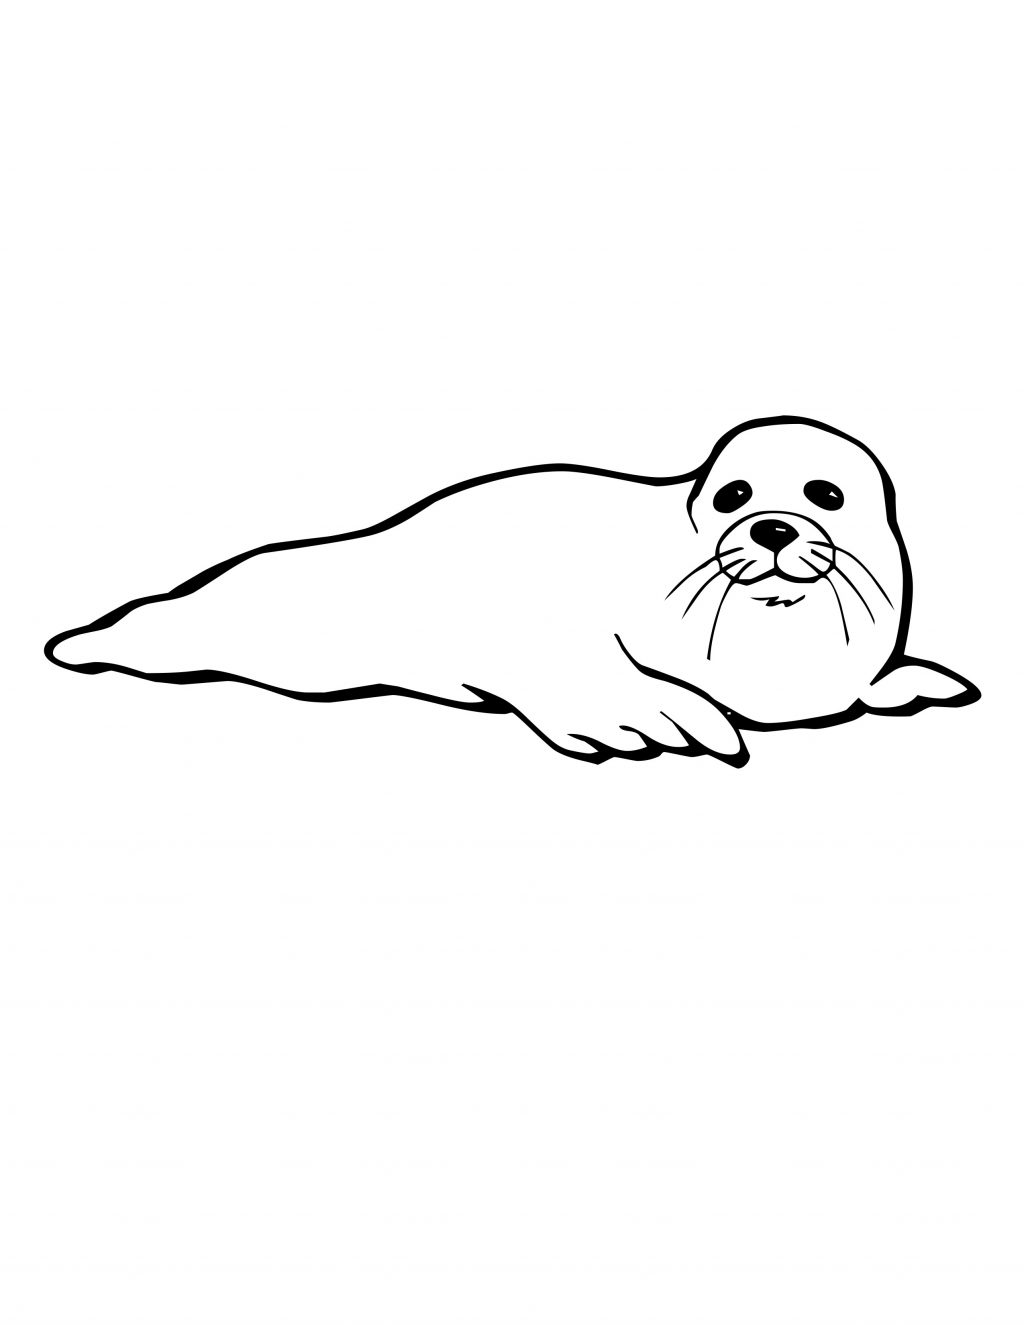 1024x1325 Baby Harp Seal Coloring Pages Coloring Page For Kids